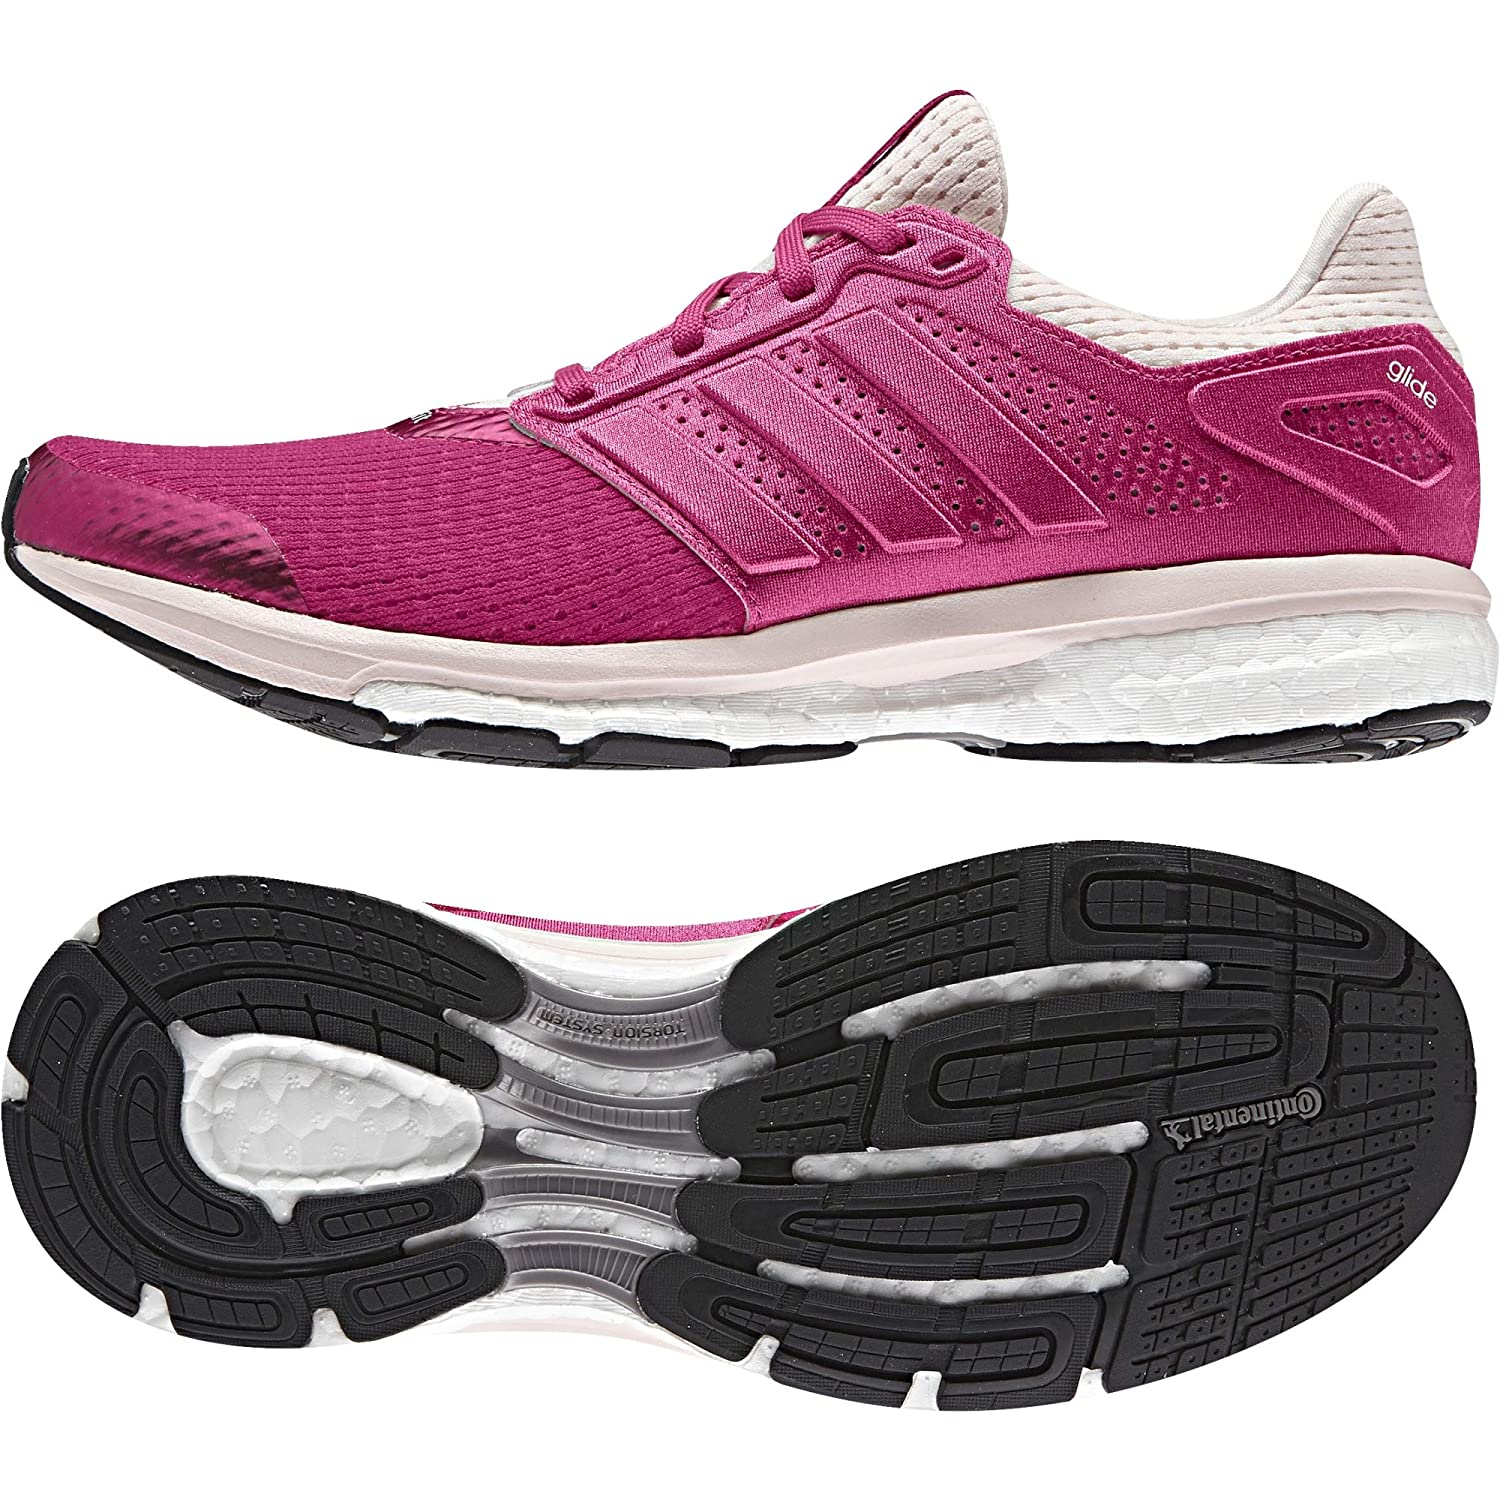 48af0eea8 adidas Women s Supernova Glide 8 W Running Shoes  Amazon.co.uk  Shoes   Bags